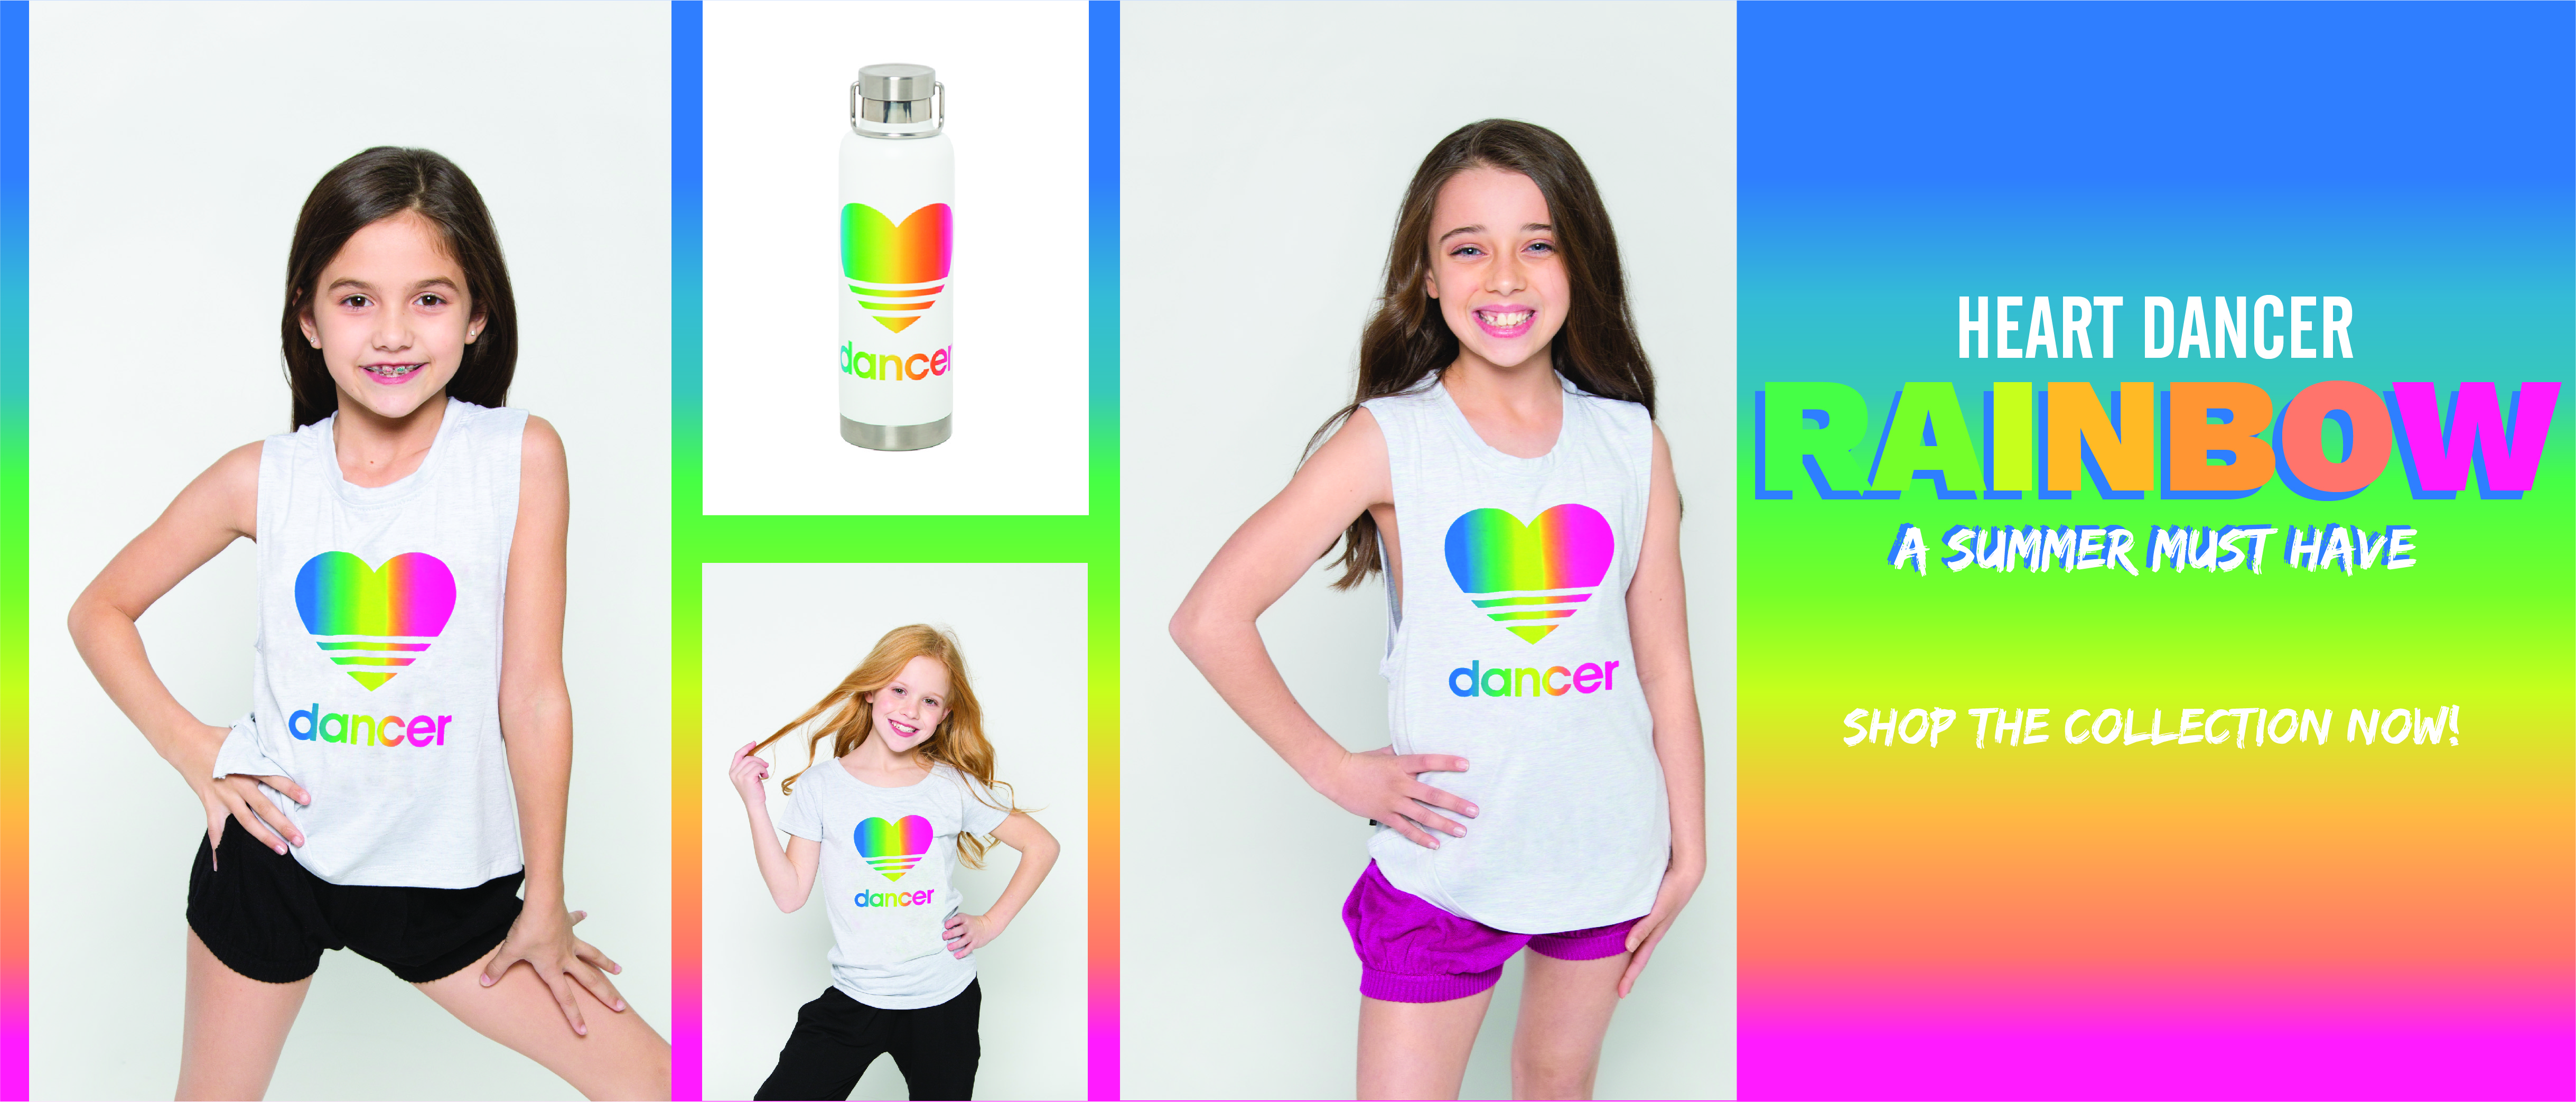 HeartDancerRainbowBanner2019